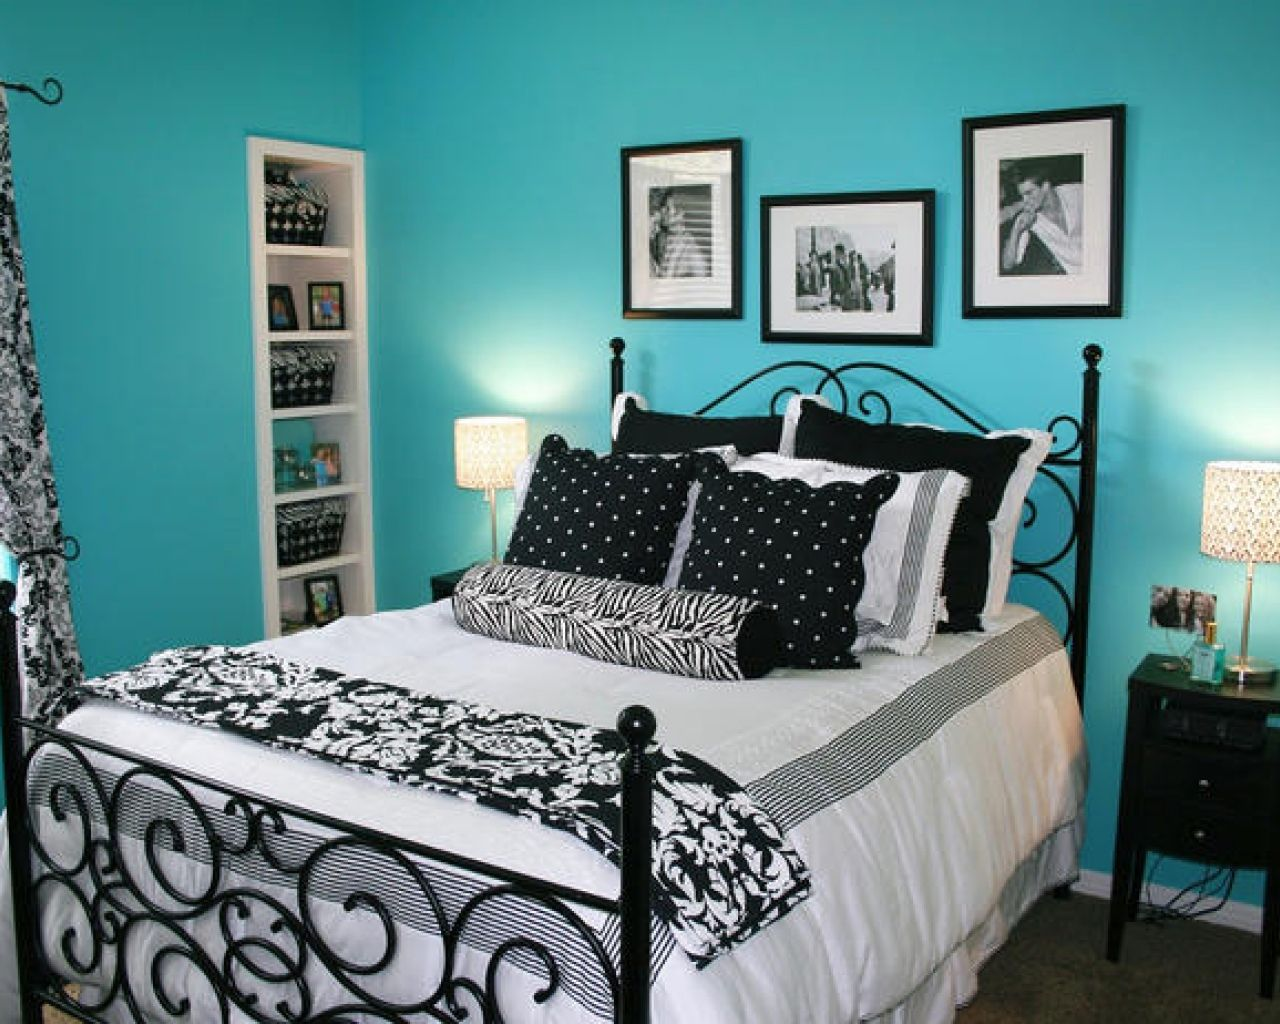 Black and white bed sheets tumblr - Blue And White Bedding Tumblr Google Search